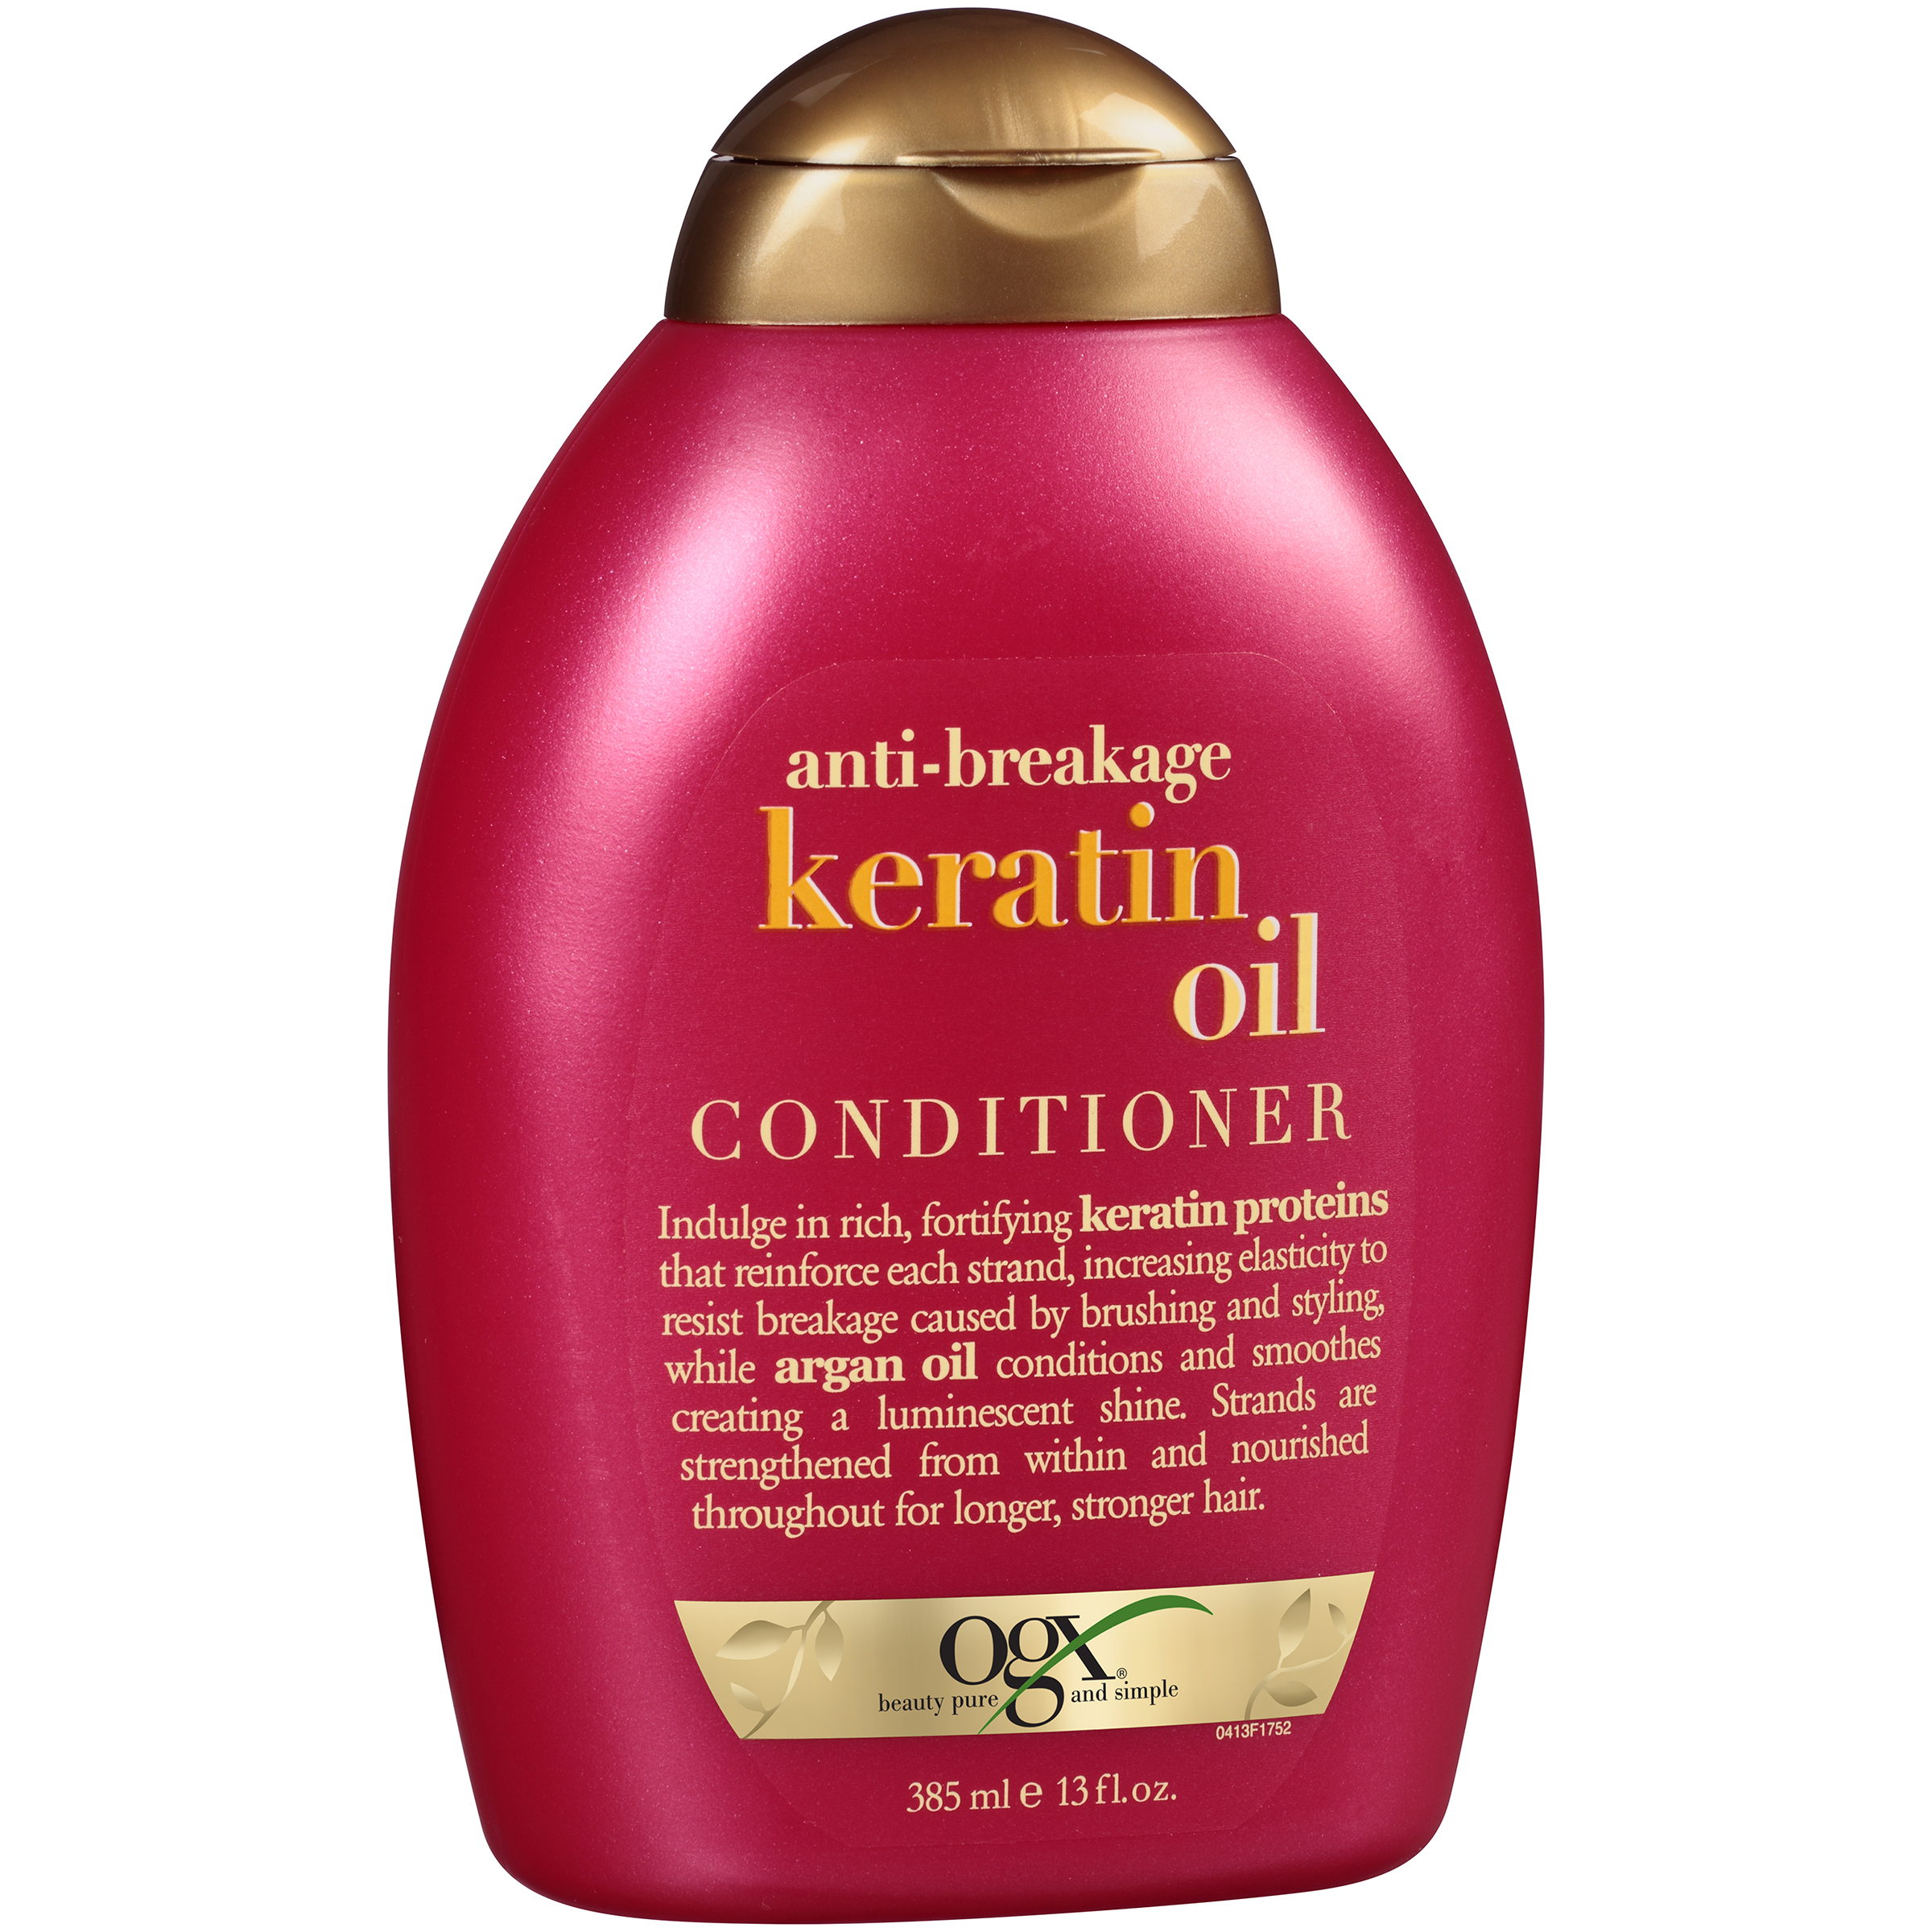 OGX® Anti-Breakage Keratin Oil Conditioner 13 fl. oz. Squeeze Bottle